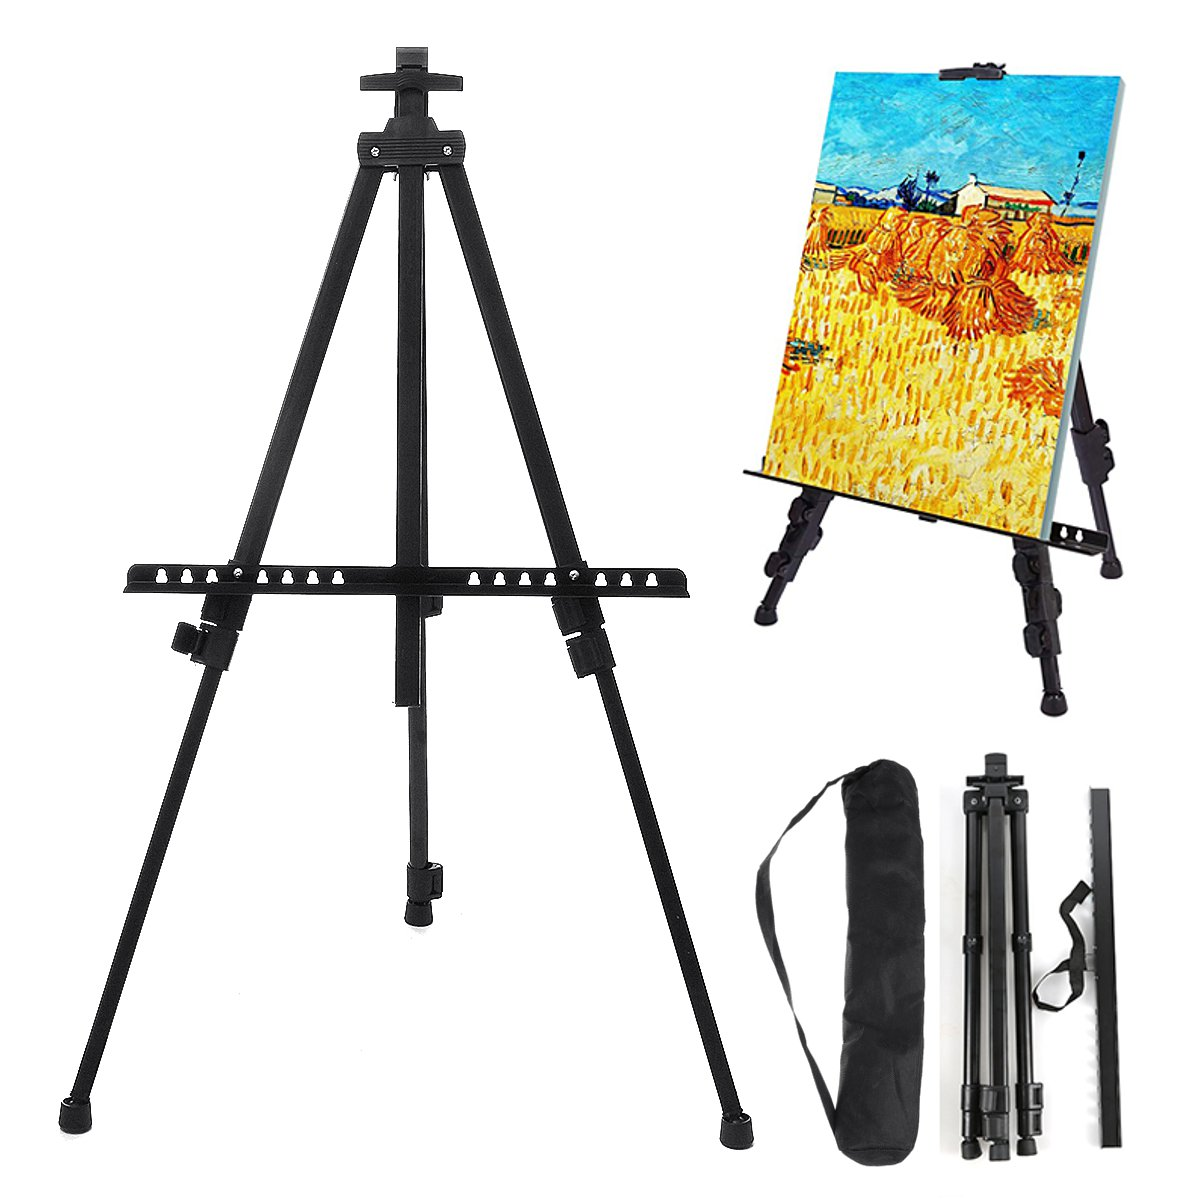 Adjustable Iron Painting Display Artist Easel Tripod Stand Folding Portable Sketching Rack Painting Tools Supplies Organizer